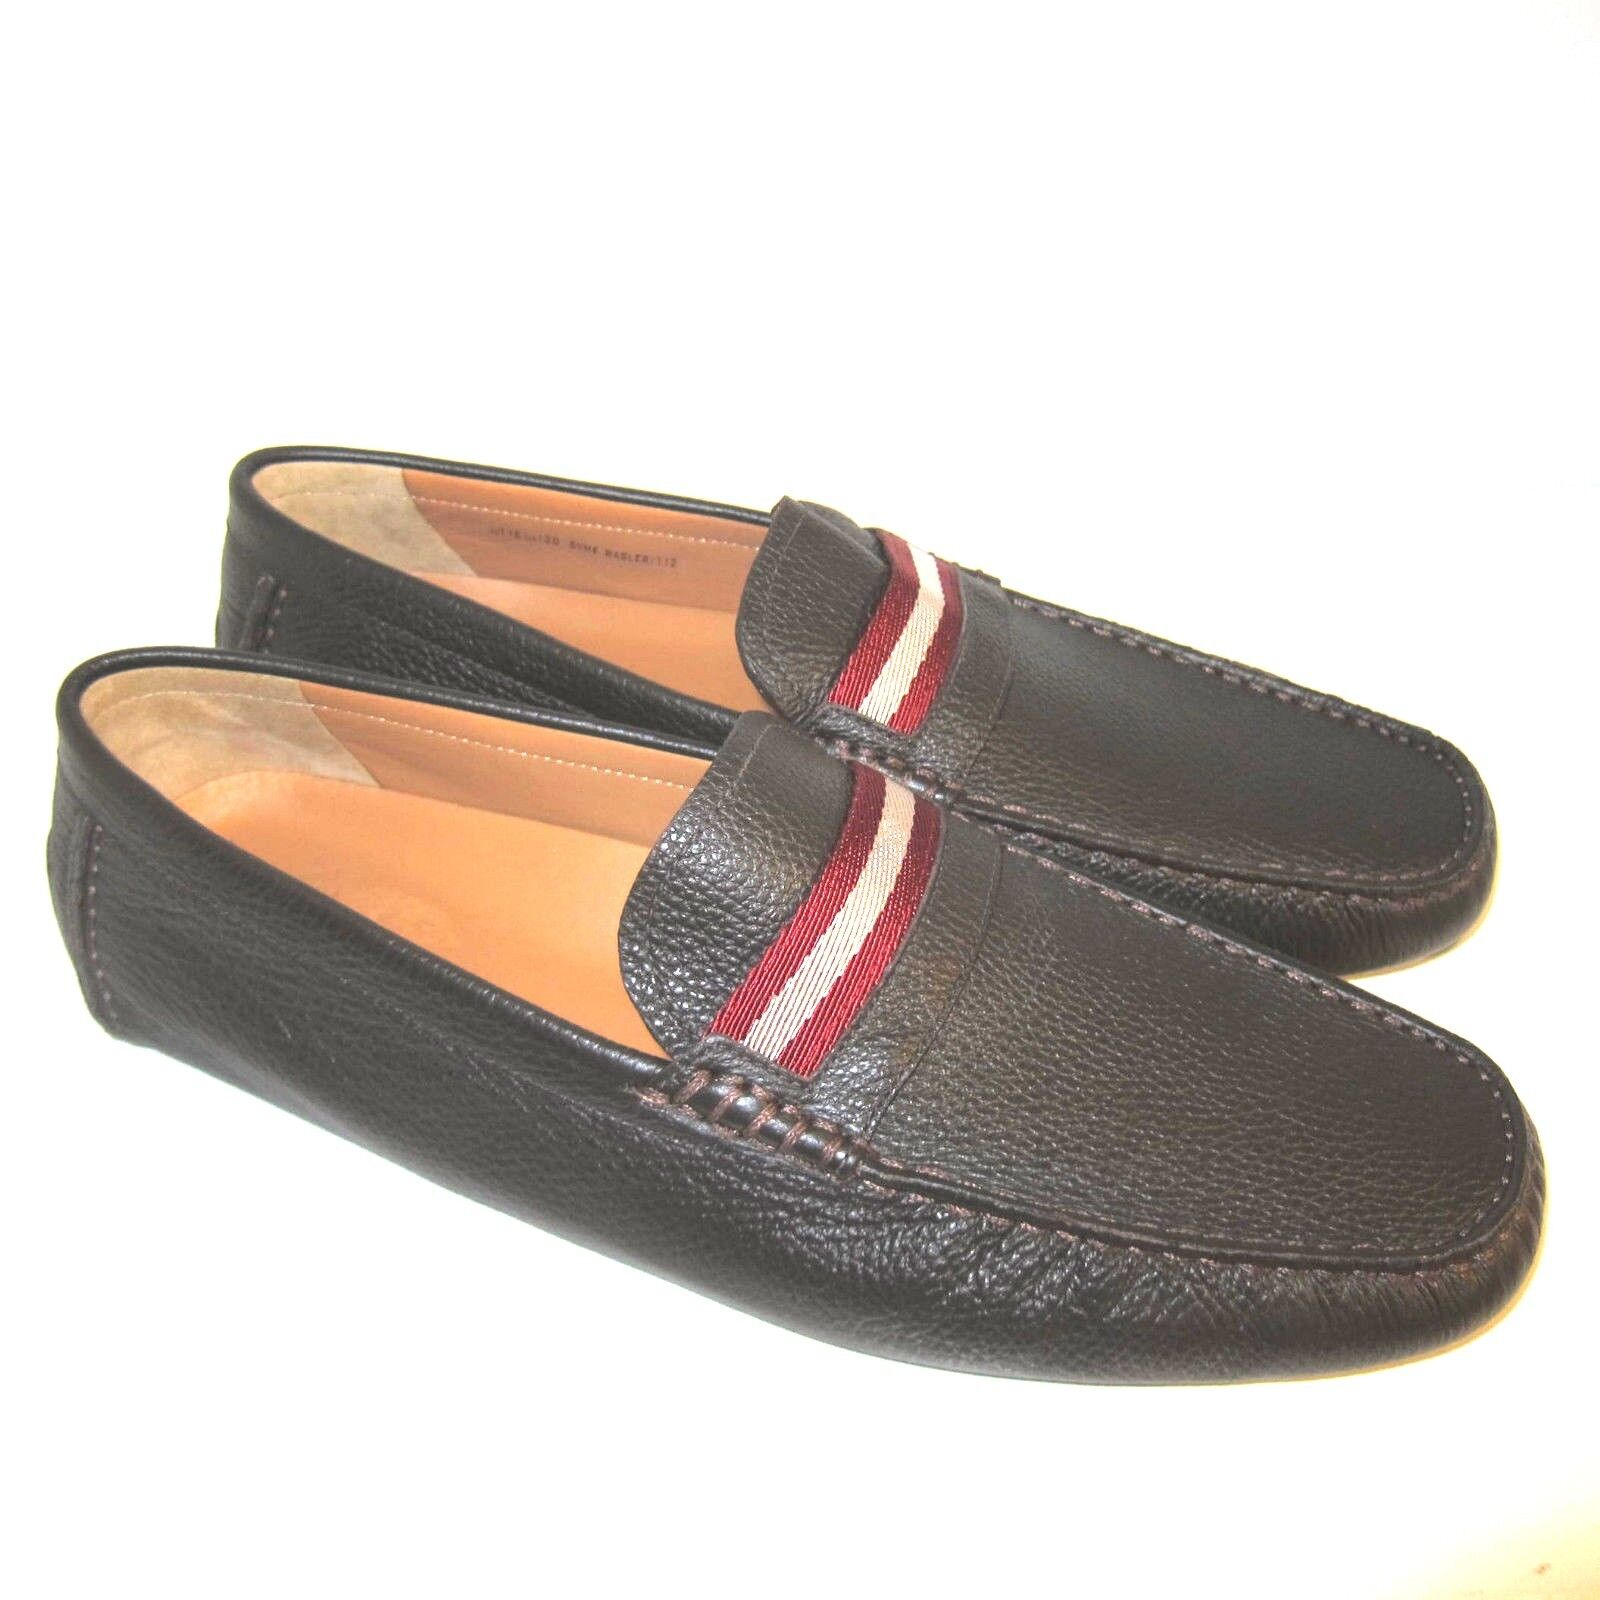 C-1607100 New Bally Wabler Chocolate Calf Grained Moccasins shoes Size US 12 D